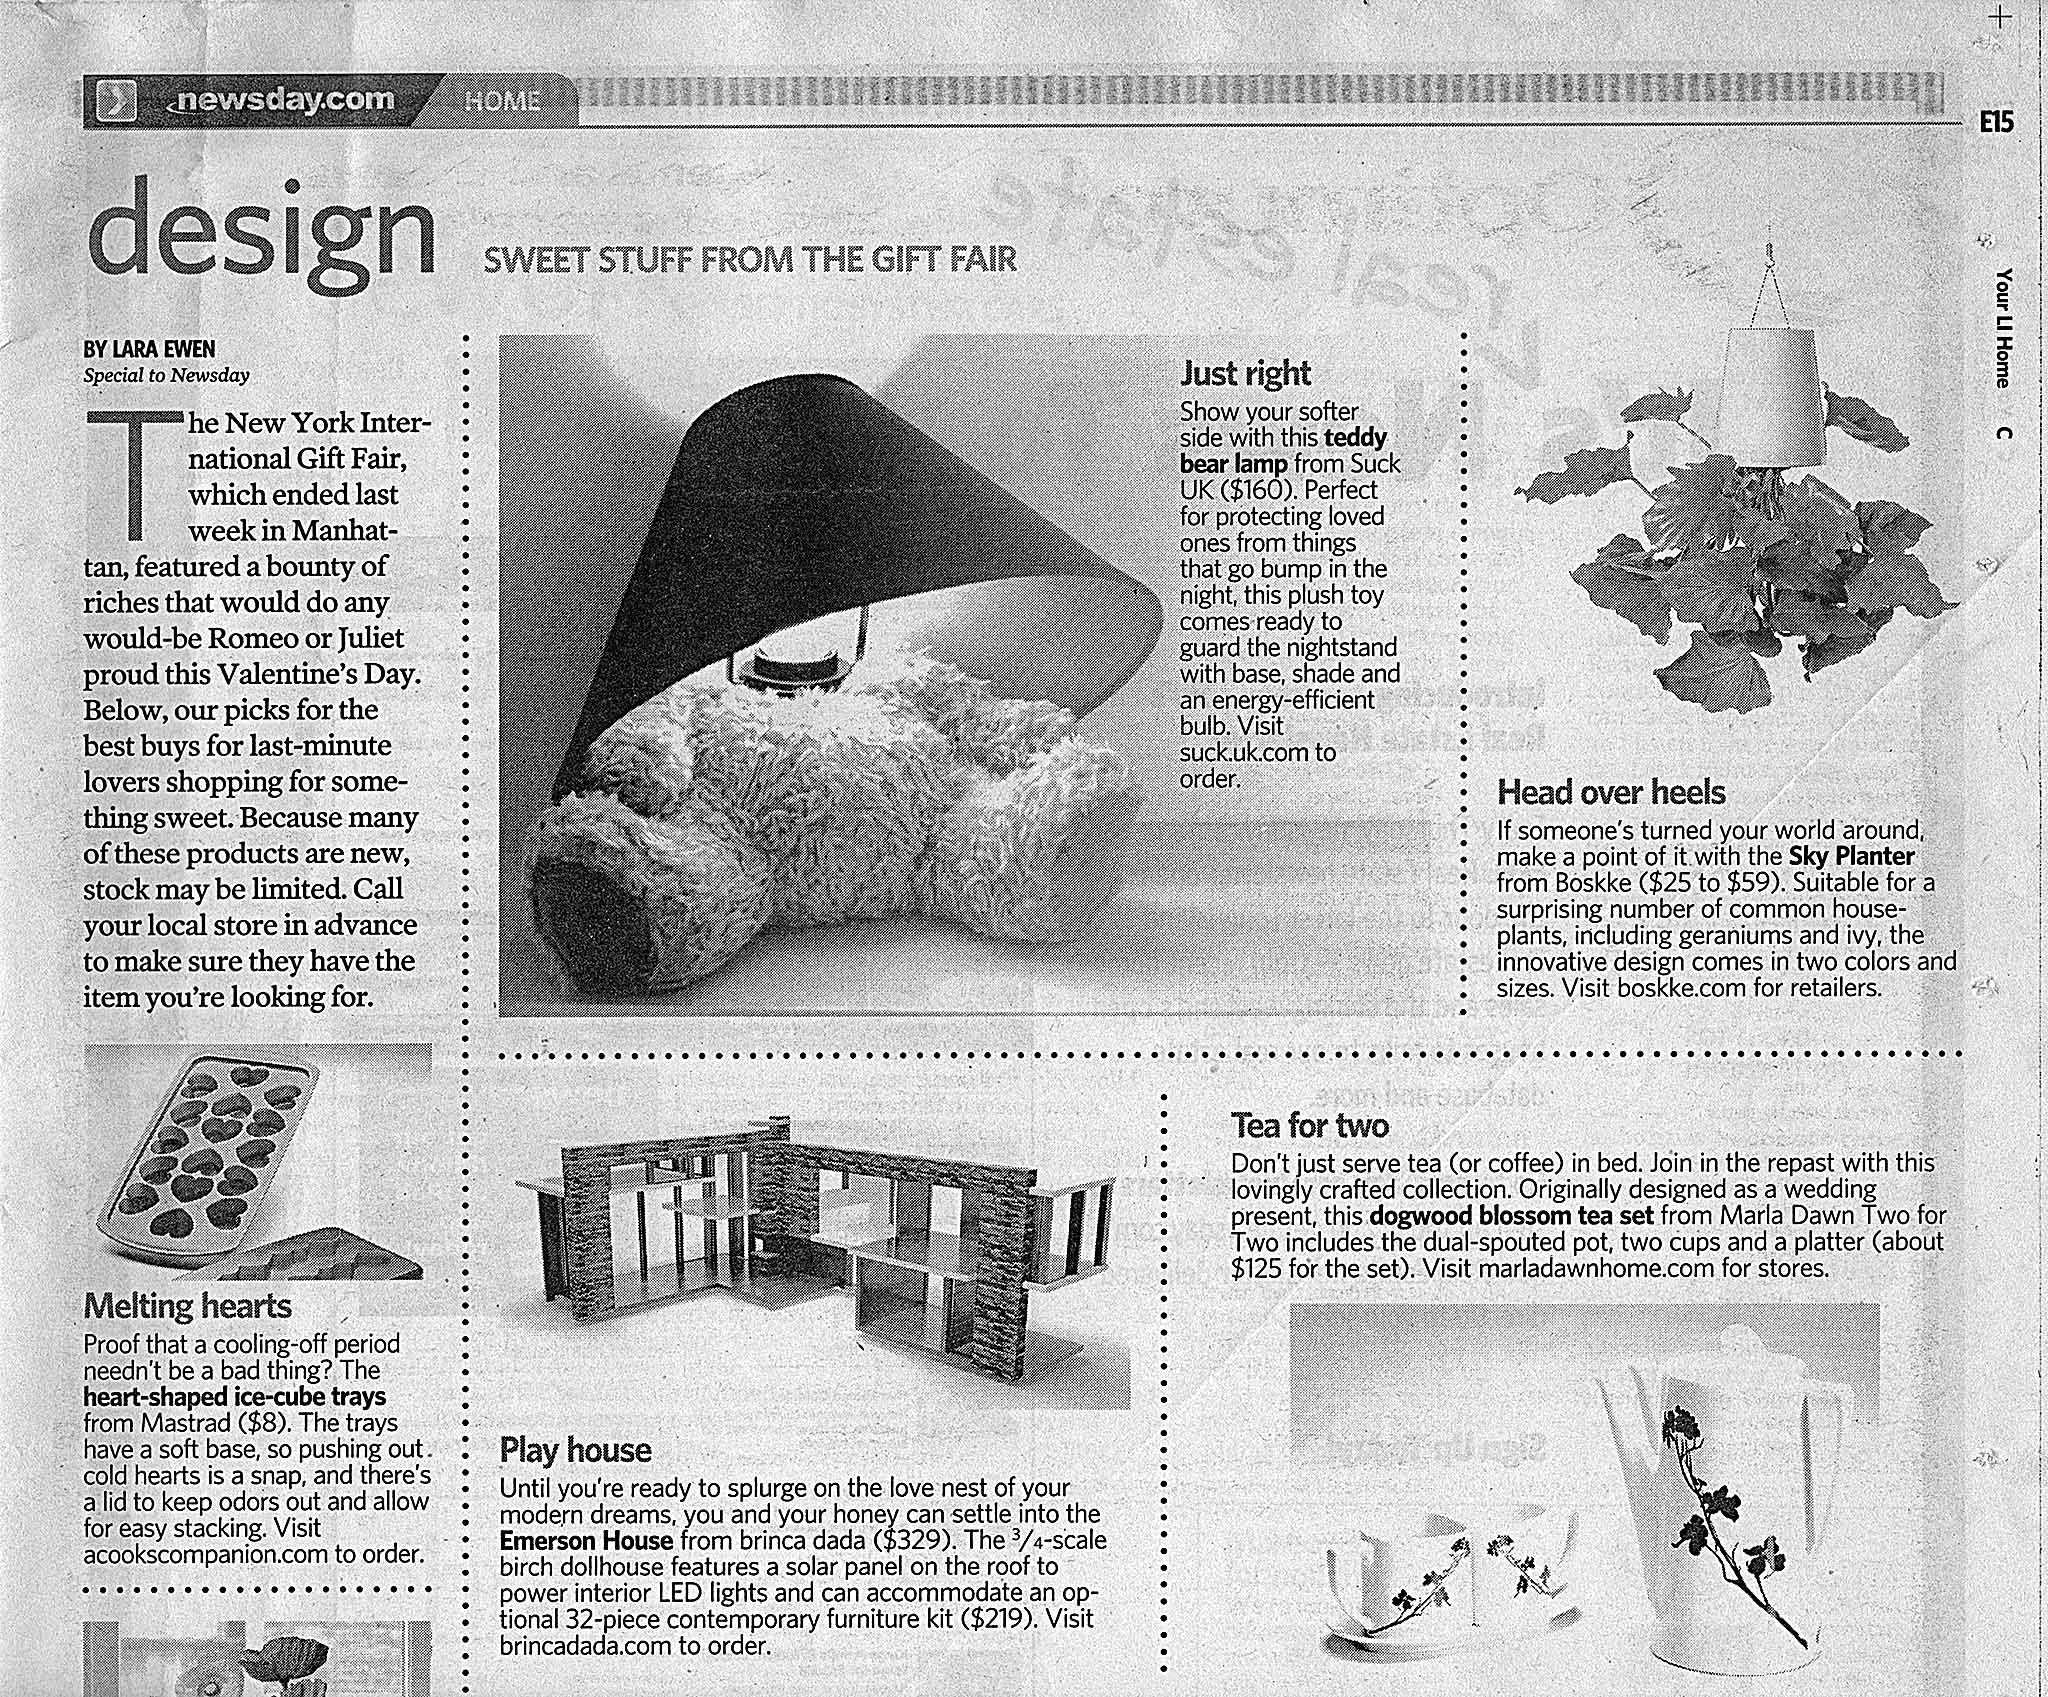 """Newsday.com, """"Home/Design: Sweet Stuff from the Gift Fair: """"Marla Dawn Home's Tea for Two set,"""" by Lara Ewen, February 11, 2011."""